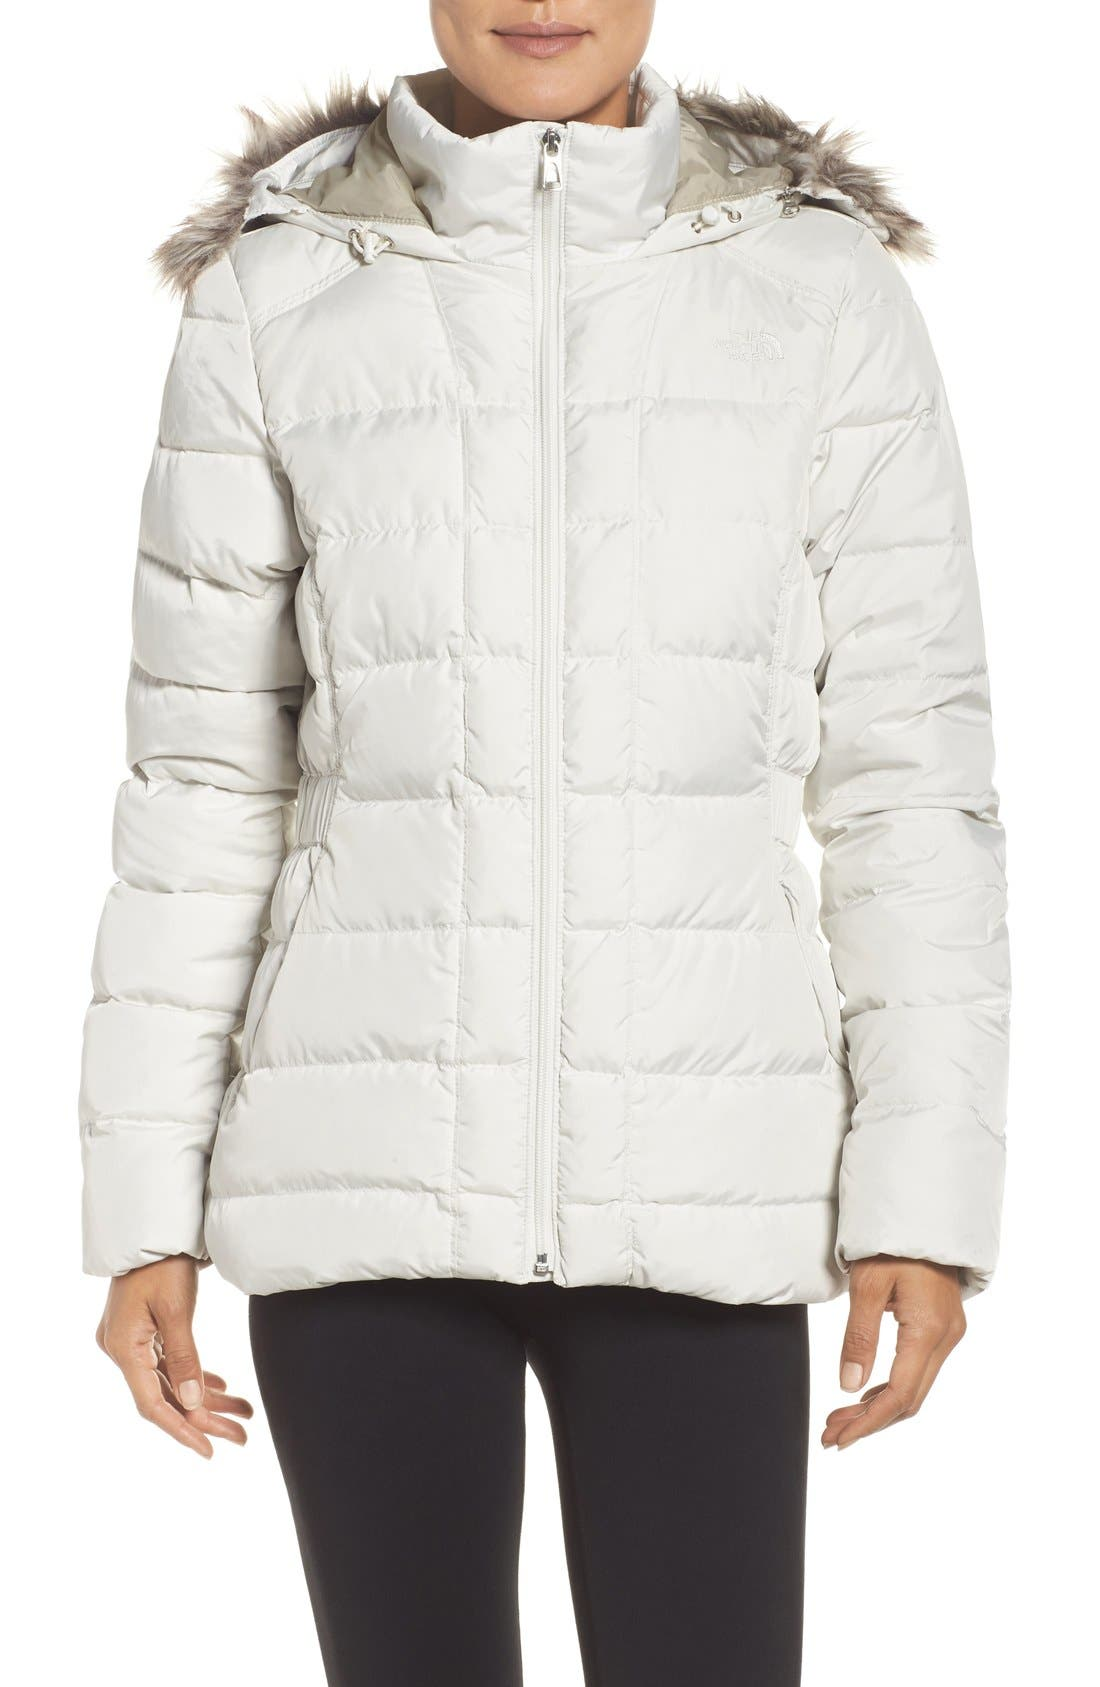 Alternate Image 1 Selected - The North Face 'Gotham' Faux Fur Trim Down Jacket